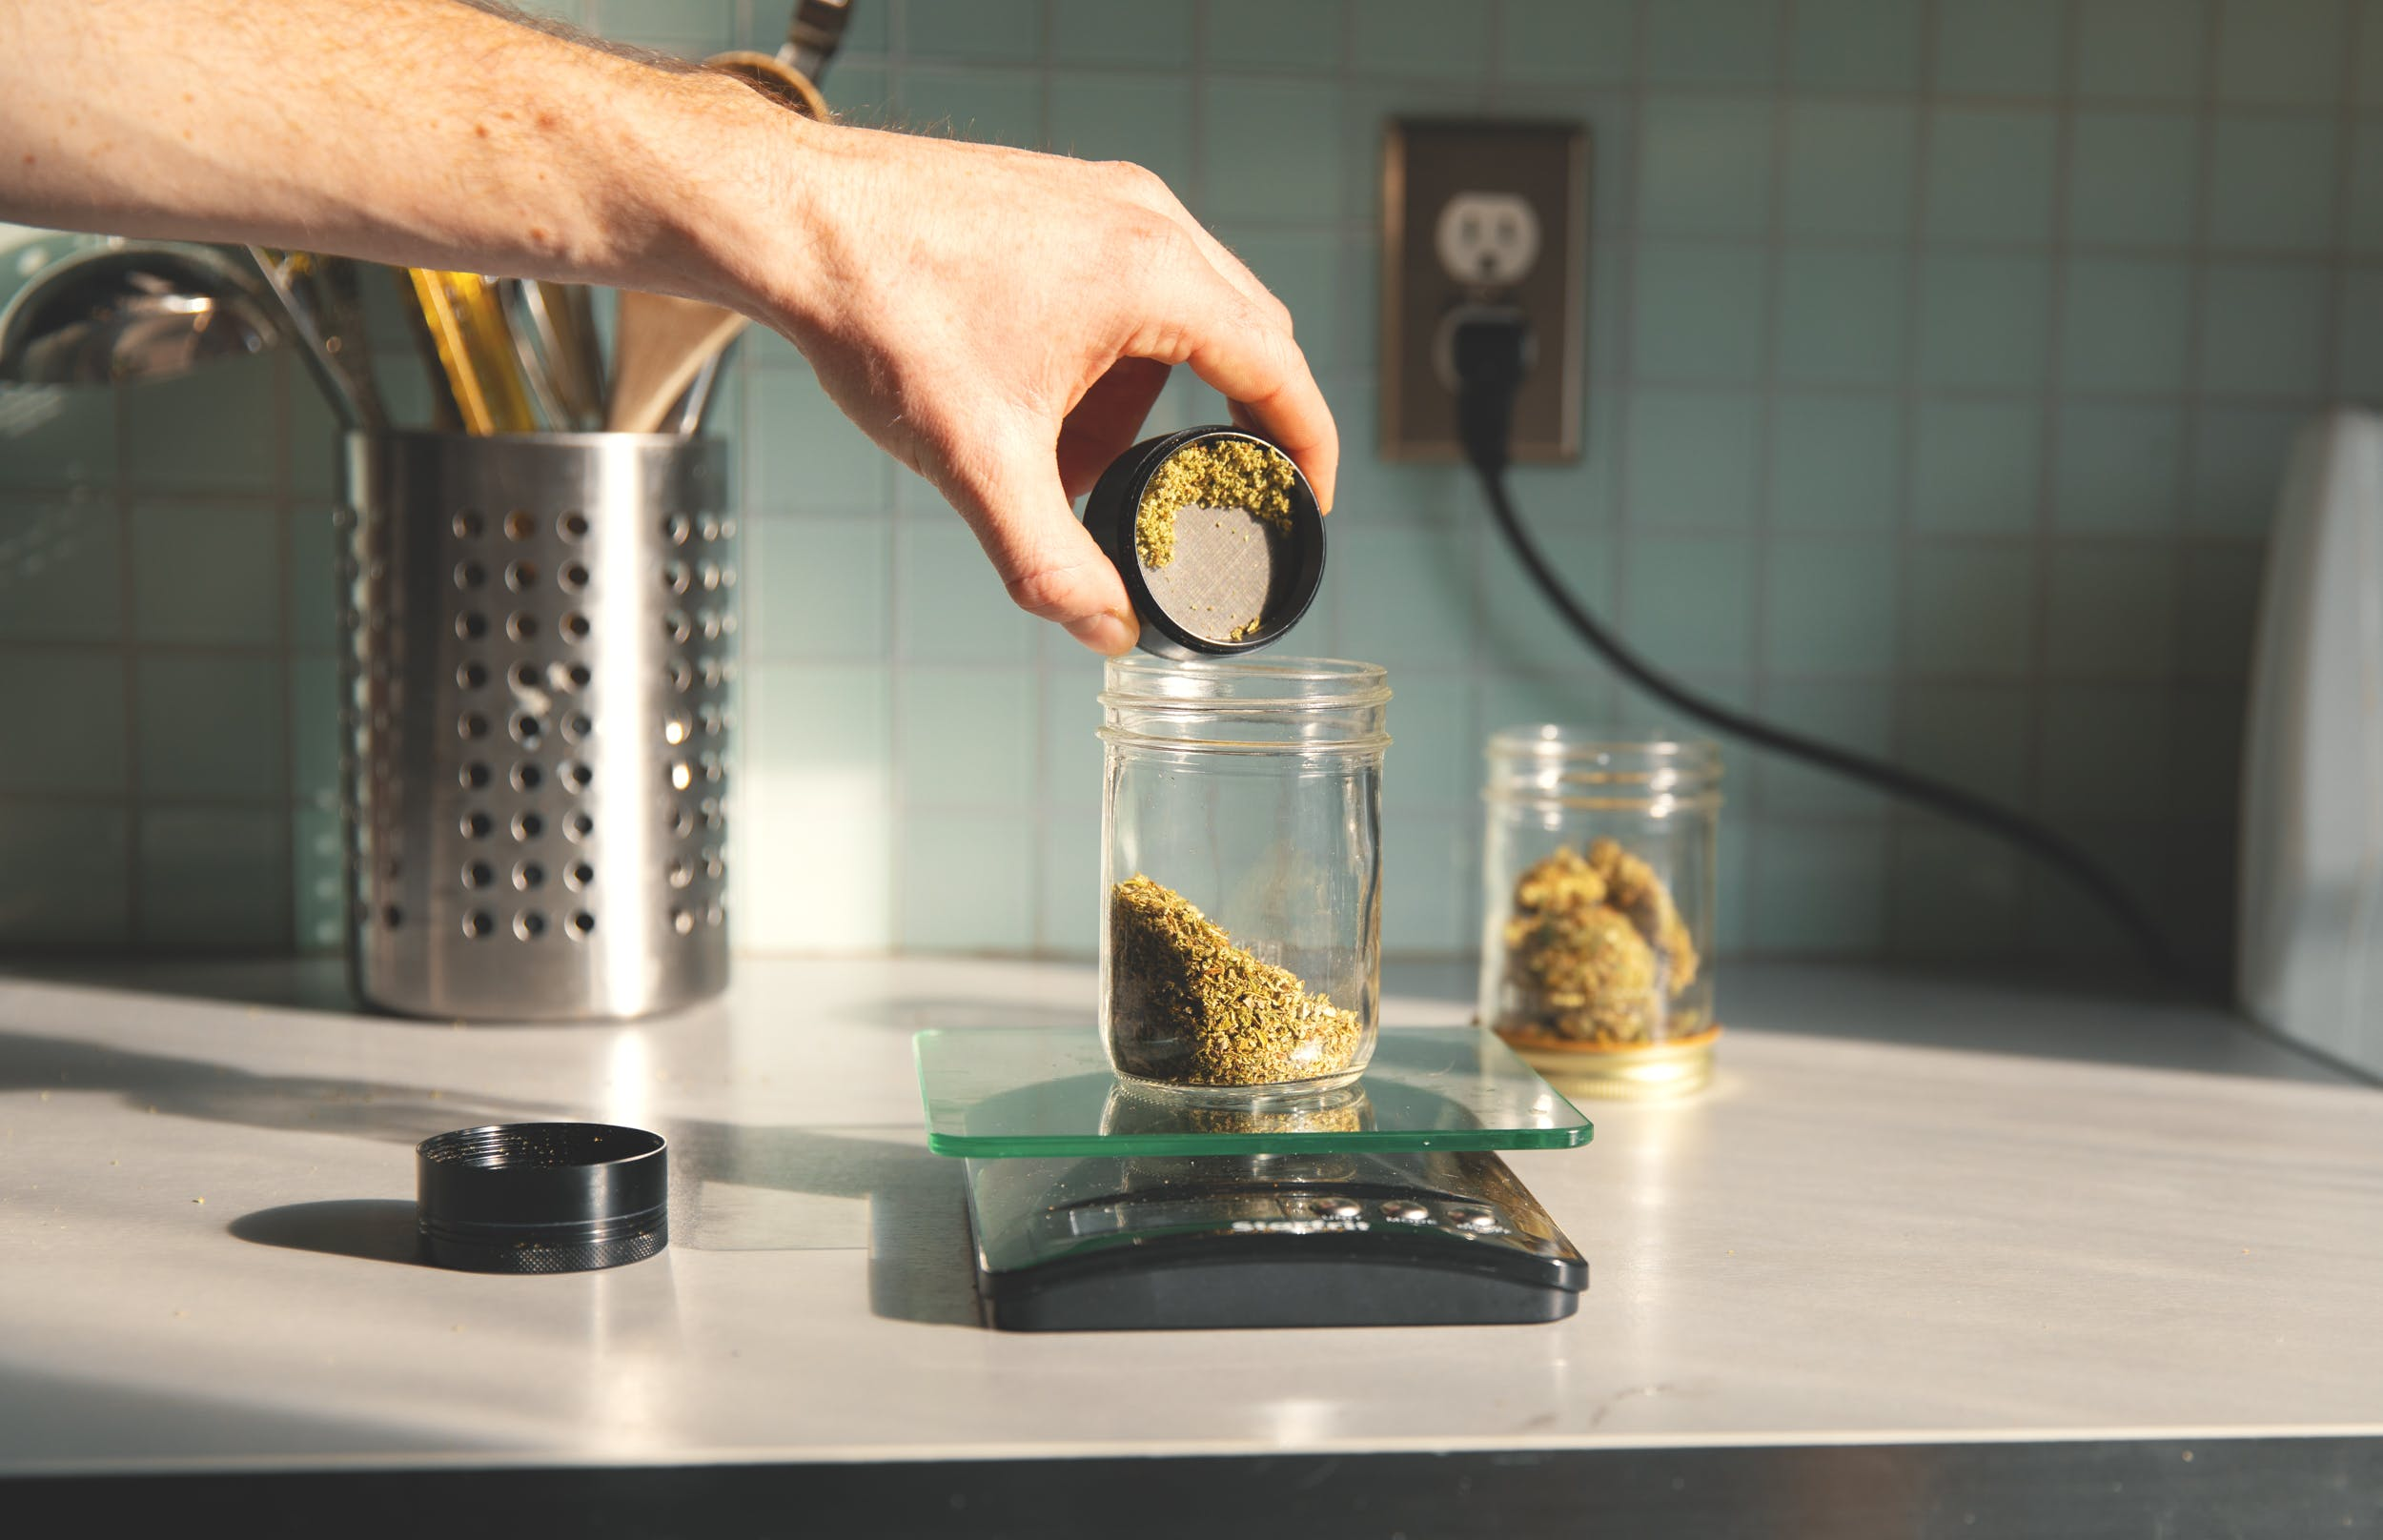 A hand pours ground flower into a jar as part of our how to make THC pills guide